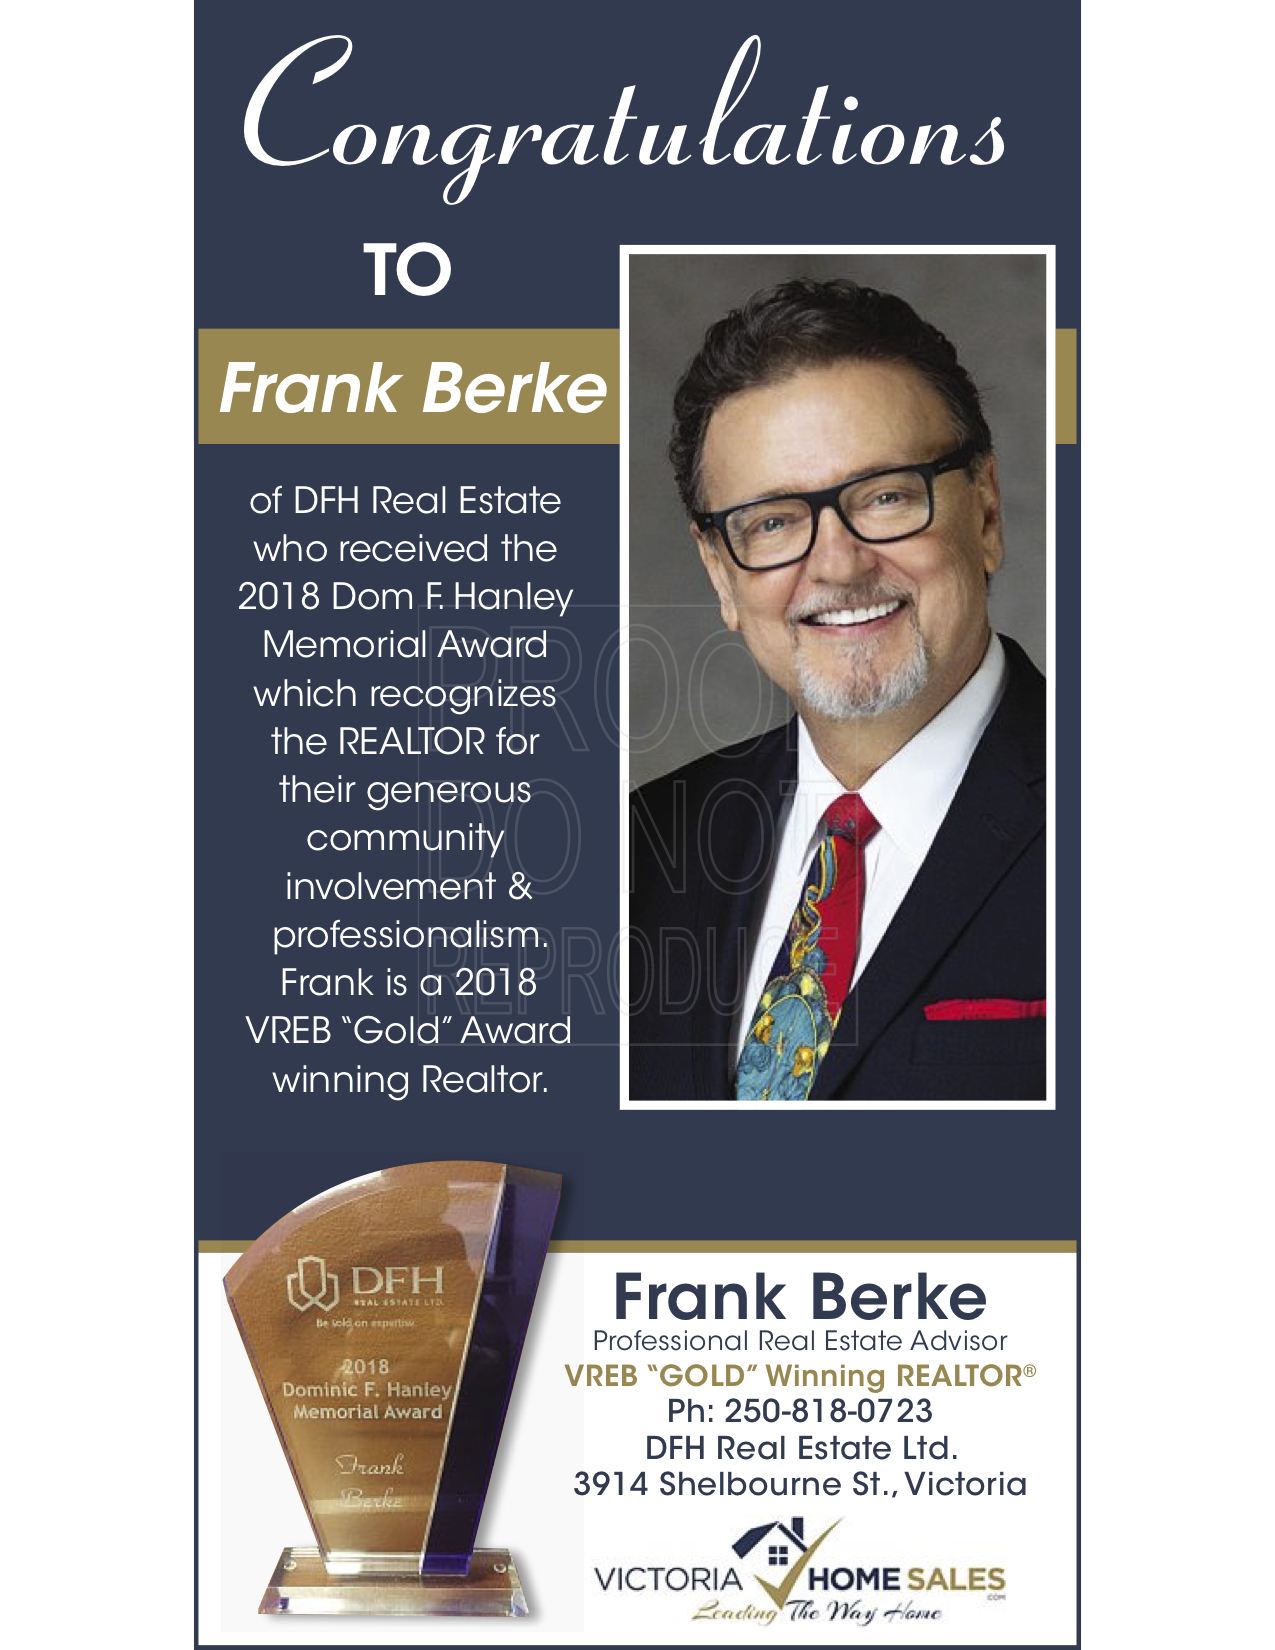 Frank Berke awarded the DFH - Dominic F.Hanley Award for his extensive work raising money for Charities in the Victoria region. image